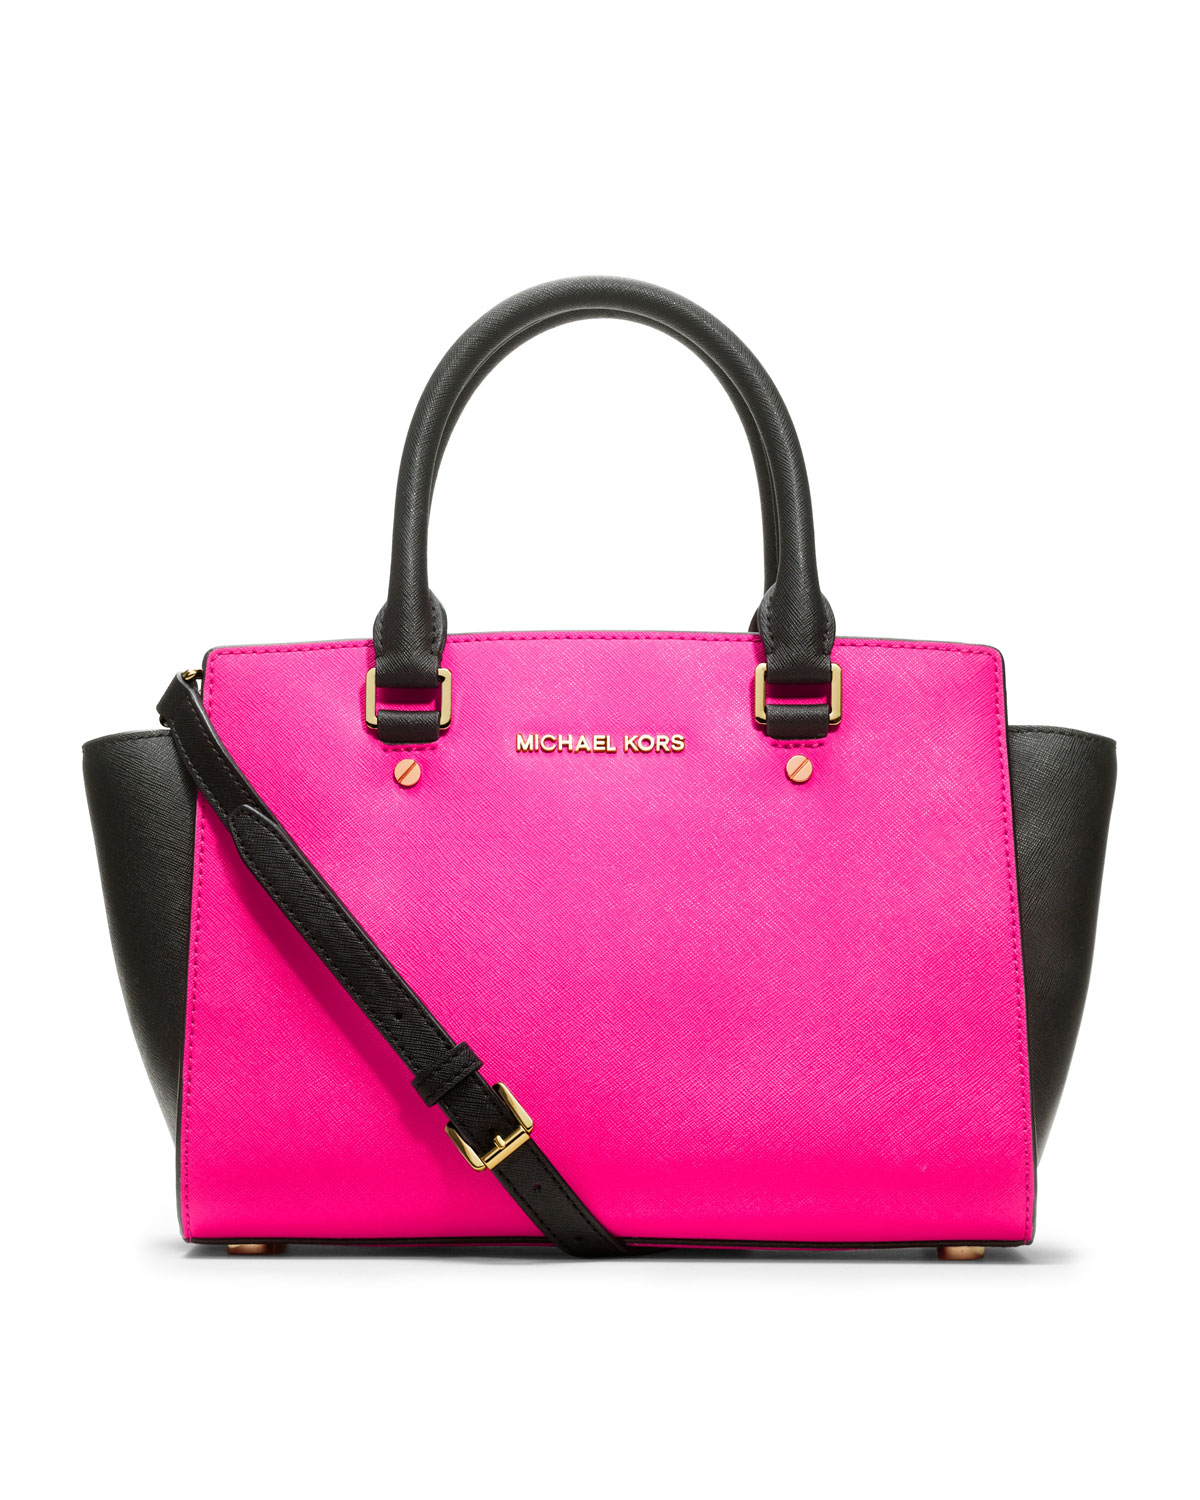 michael michael kors medium selma saffiano satchel in pink lyst. Black Bedroom Furniture Sets. Home Design Ideas